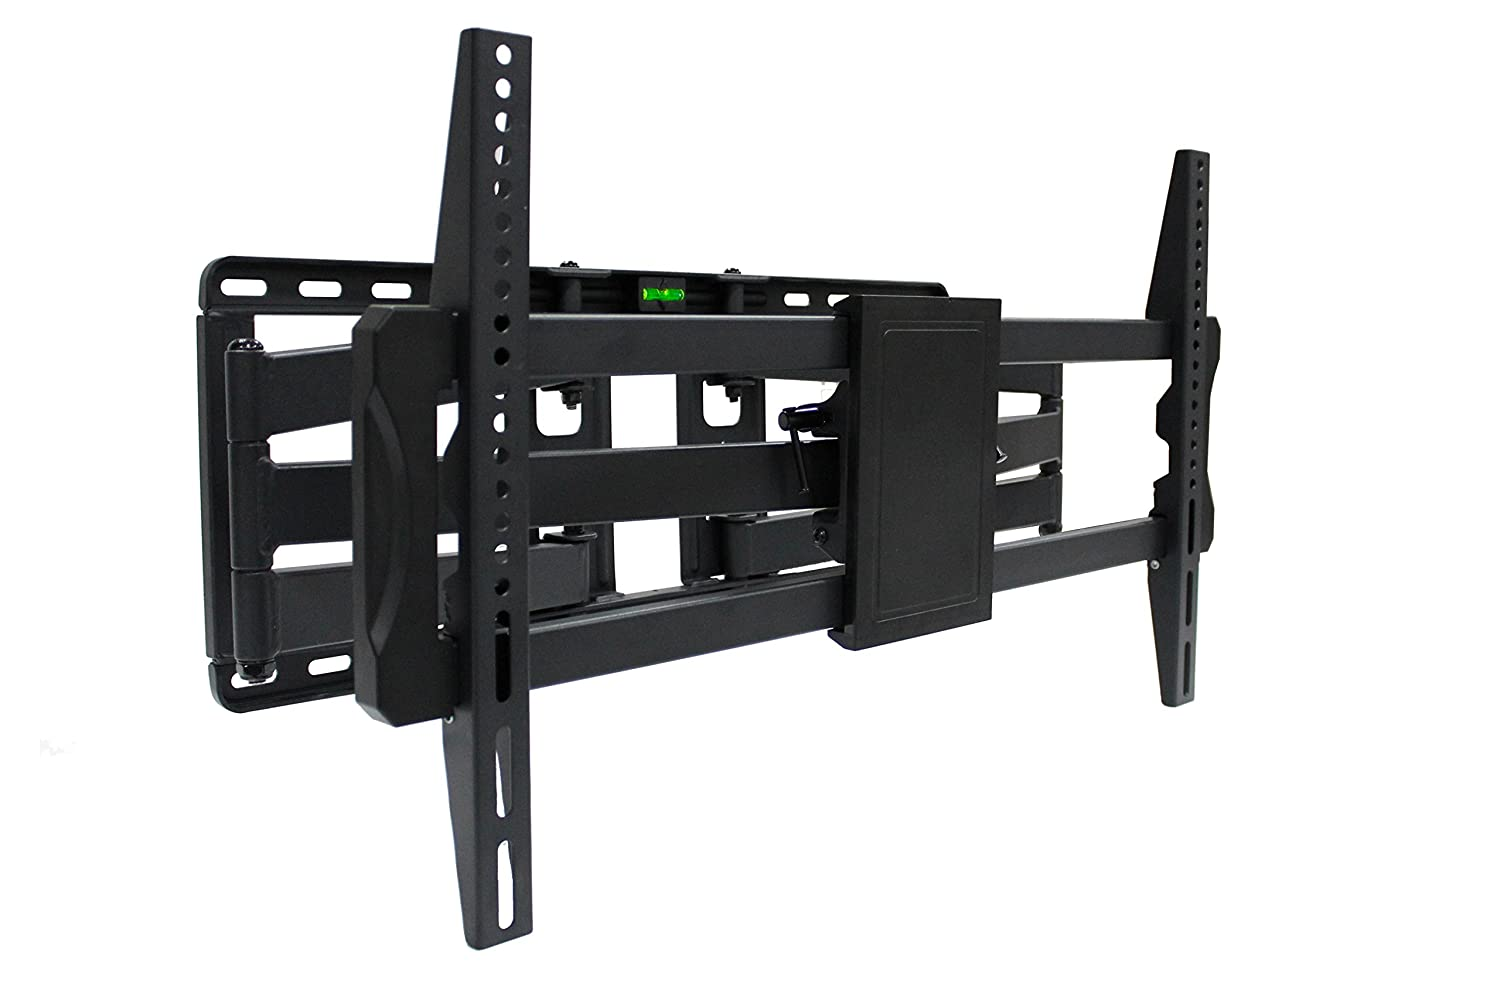 """Articulating TV Wall Mount Bracket - EasyMount for 37"""" – 80"""" TVs : Continu.us Universal TV Bracket with Full Function Articulation, Tilt + Swivel. Easy to Install & Perfect at Any Angle. 132 lbs Max"""